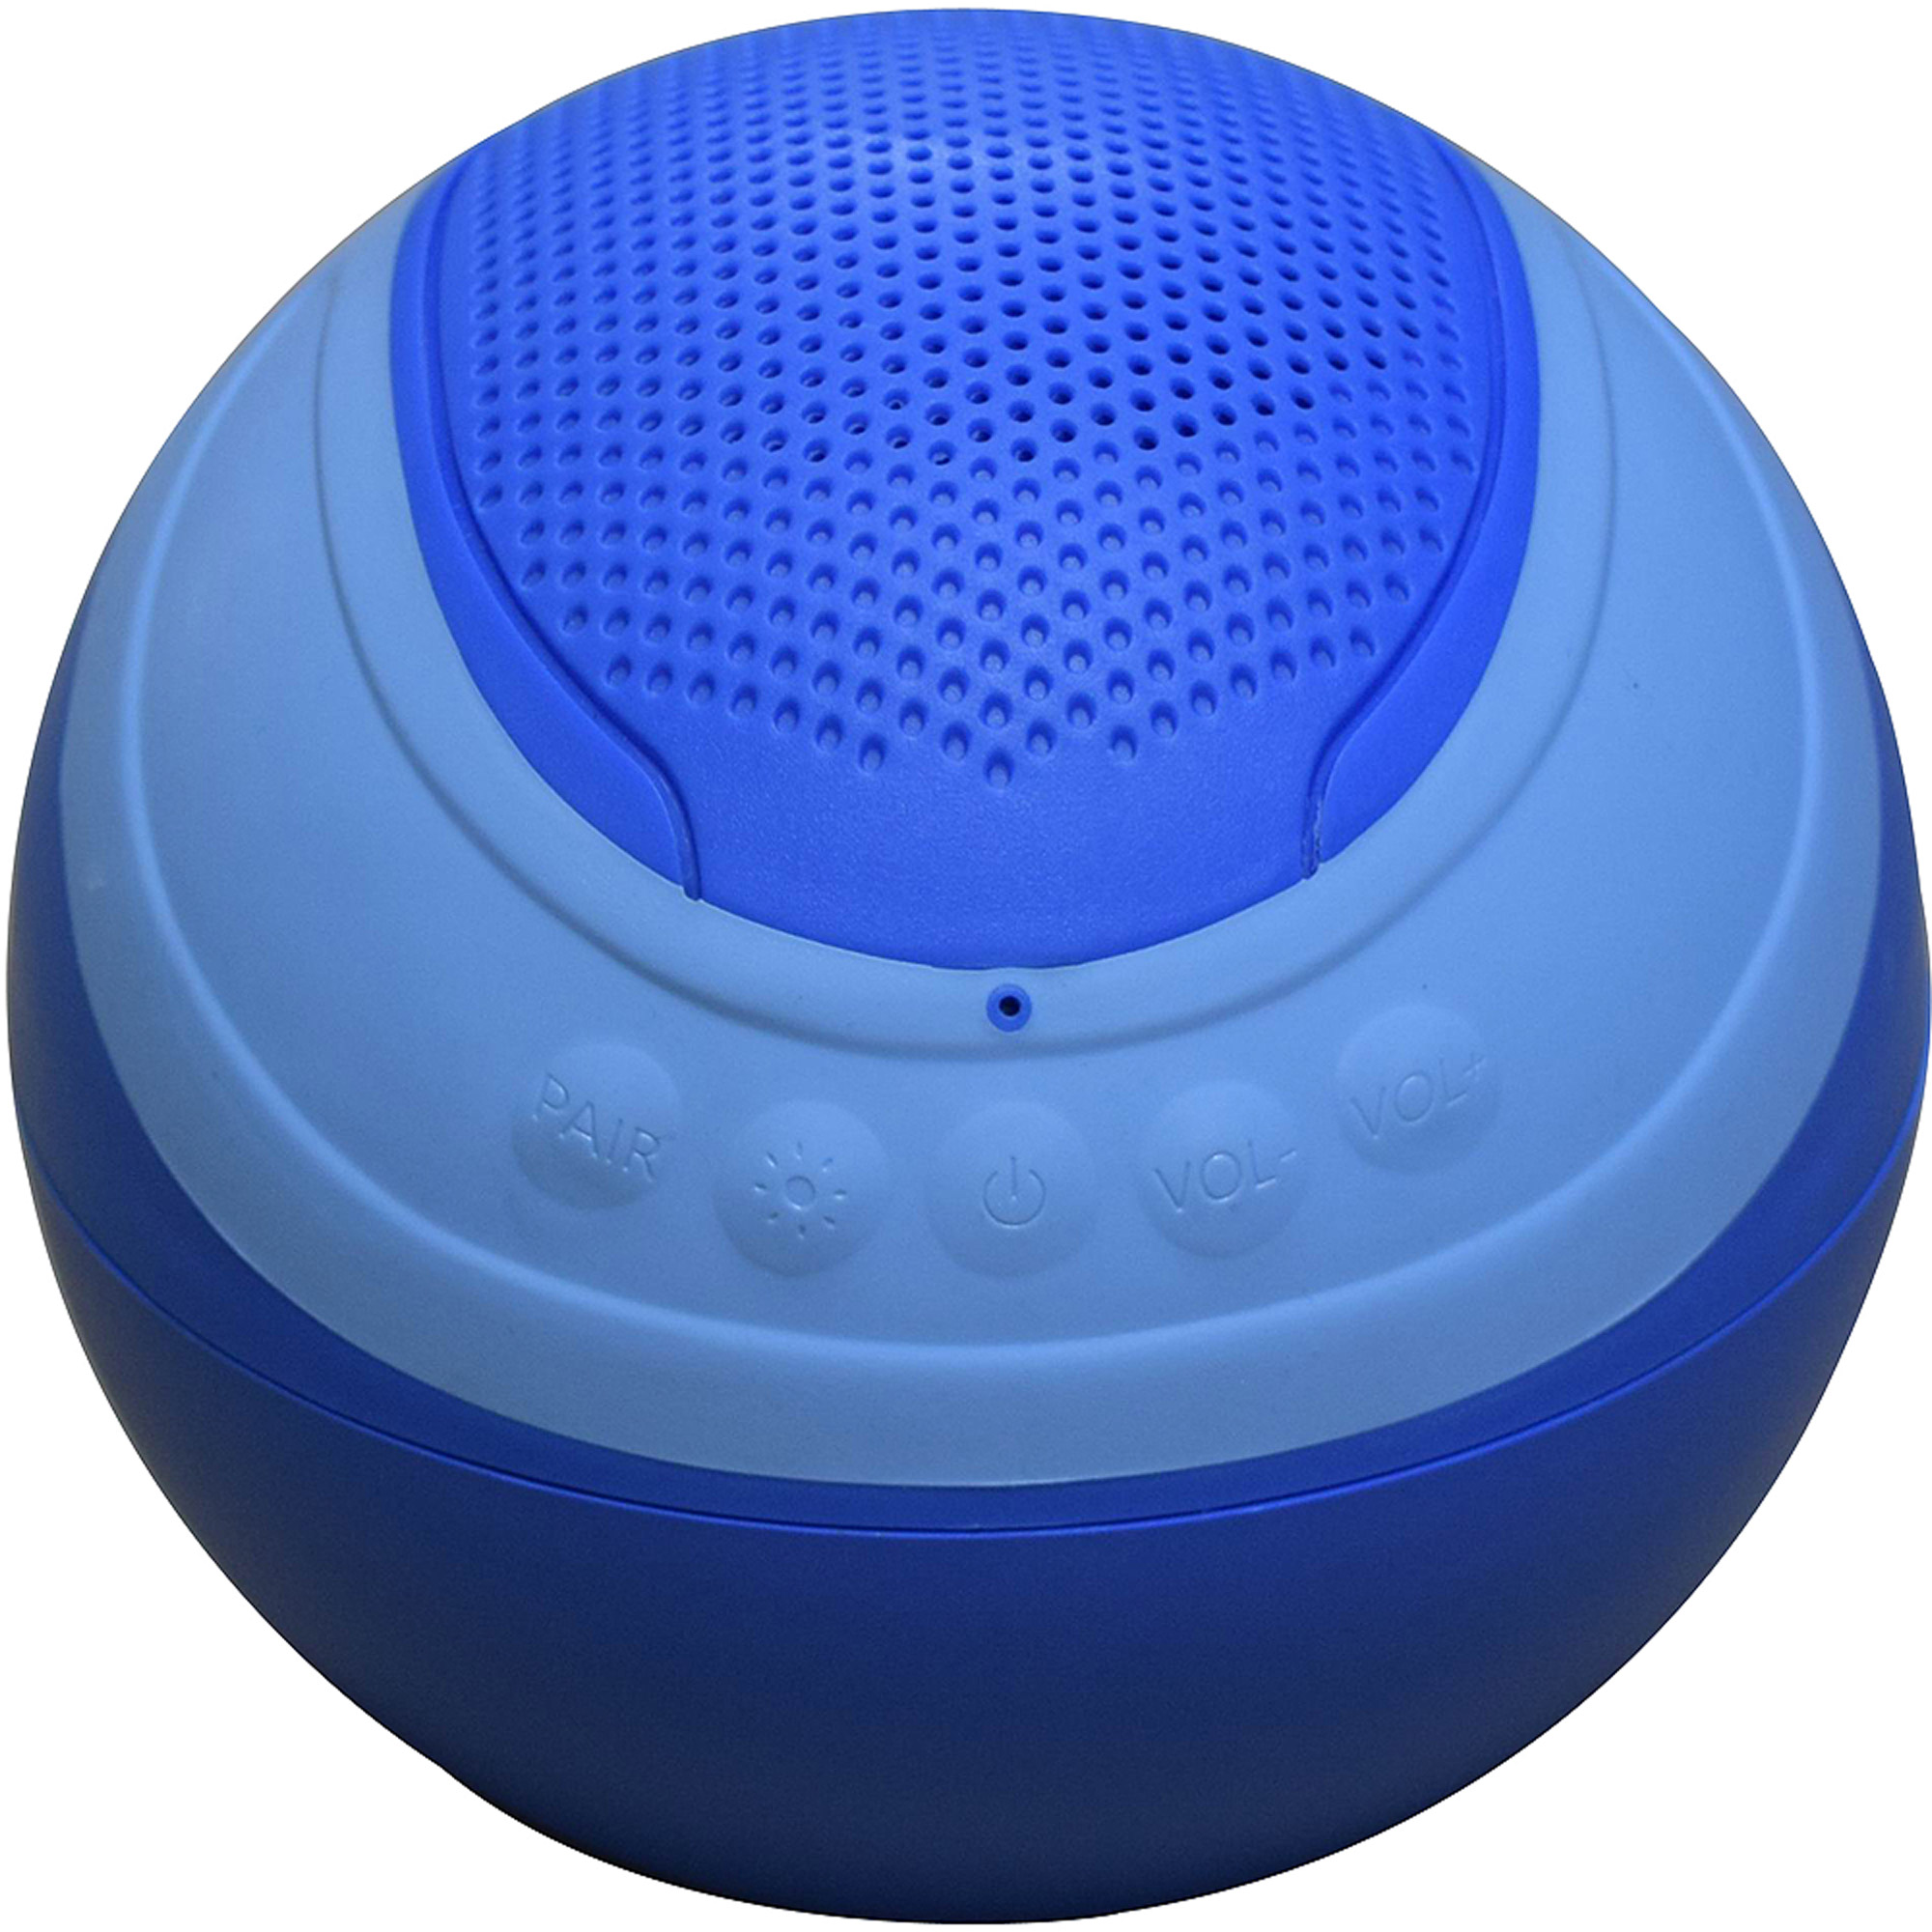 Blackweb ATLANTIS Floating Speaker, Blue